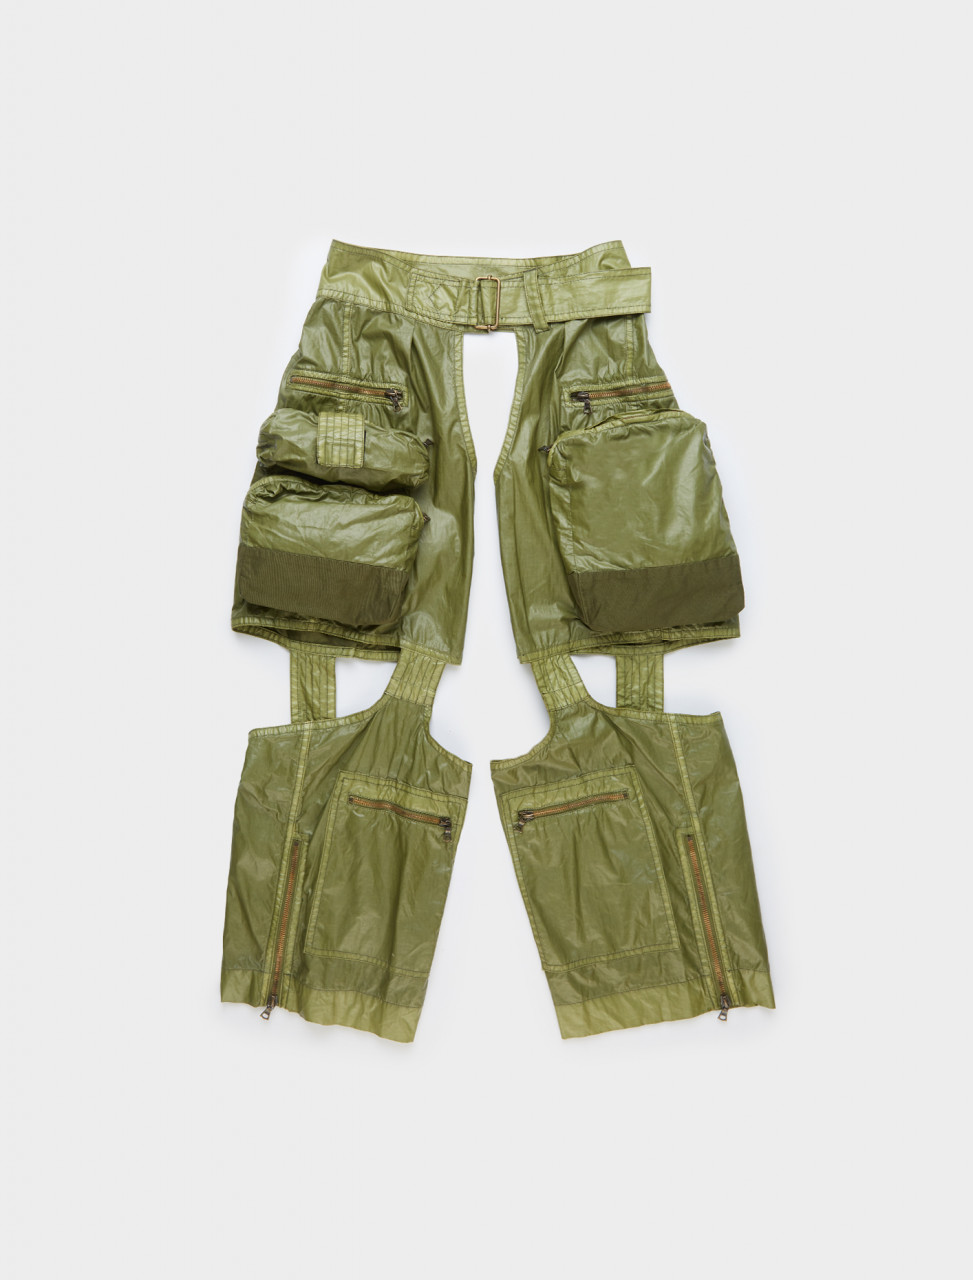 Dries van Noten Paco Chaps with Pockets in Khaki Front